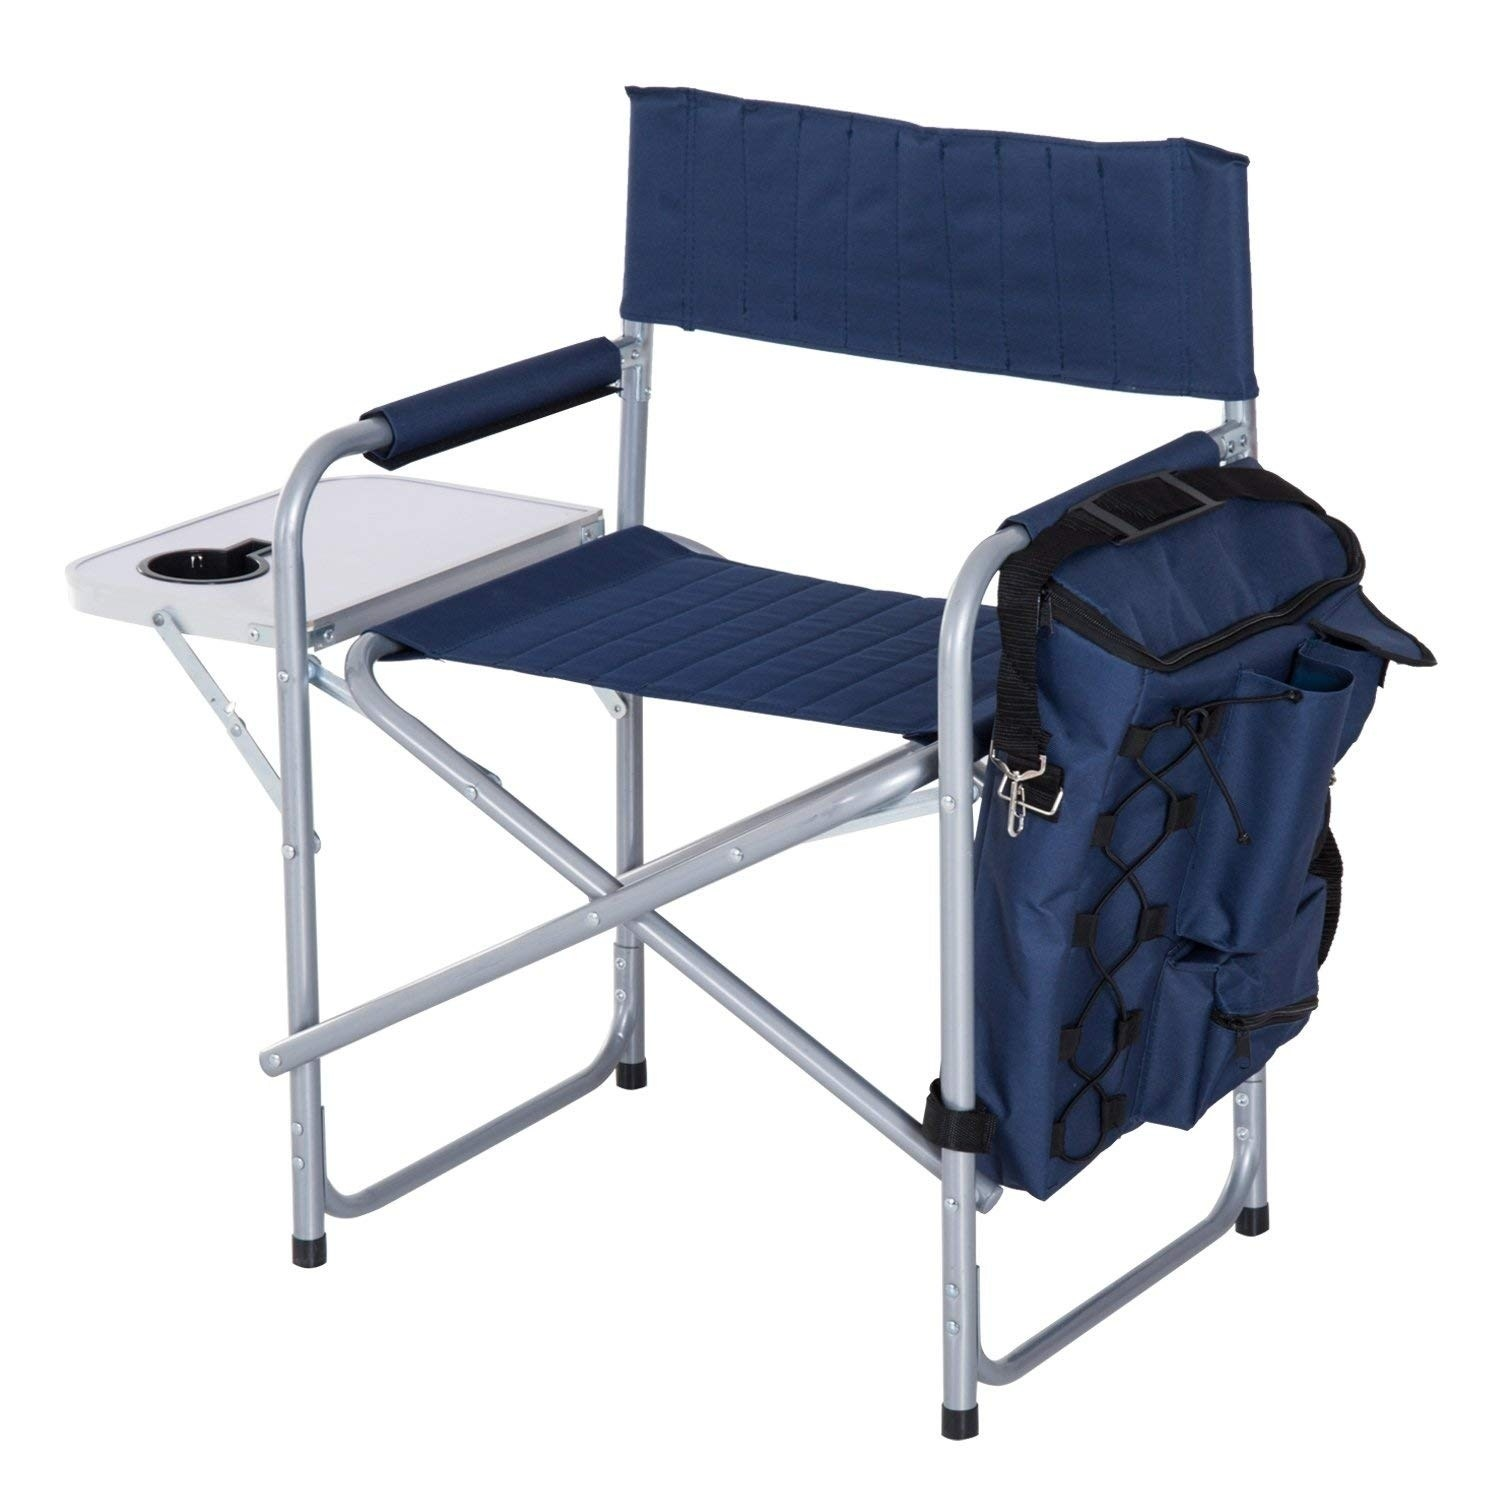 outsunny steel director folding camp chair with side table and cooler dark blue outdoor free shipping today diy living room patterns for quilted runners toppers mirrored drawer